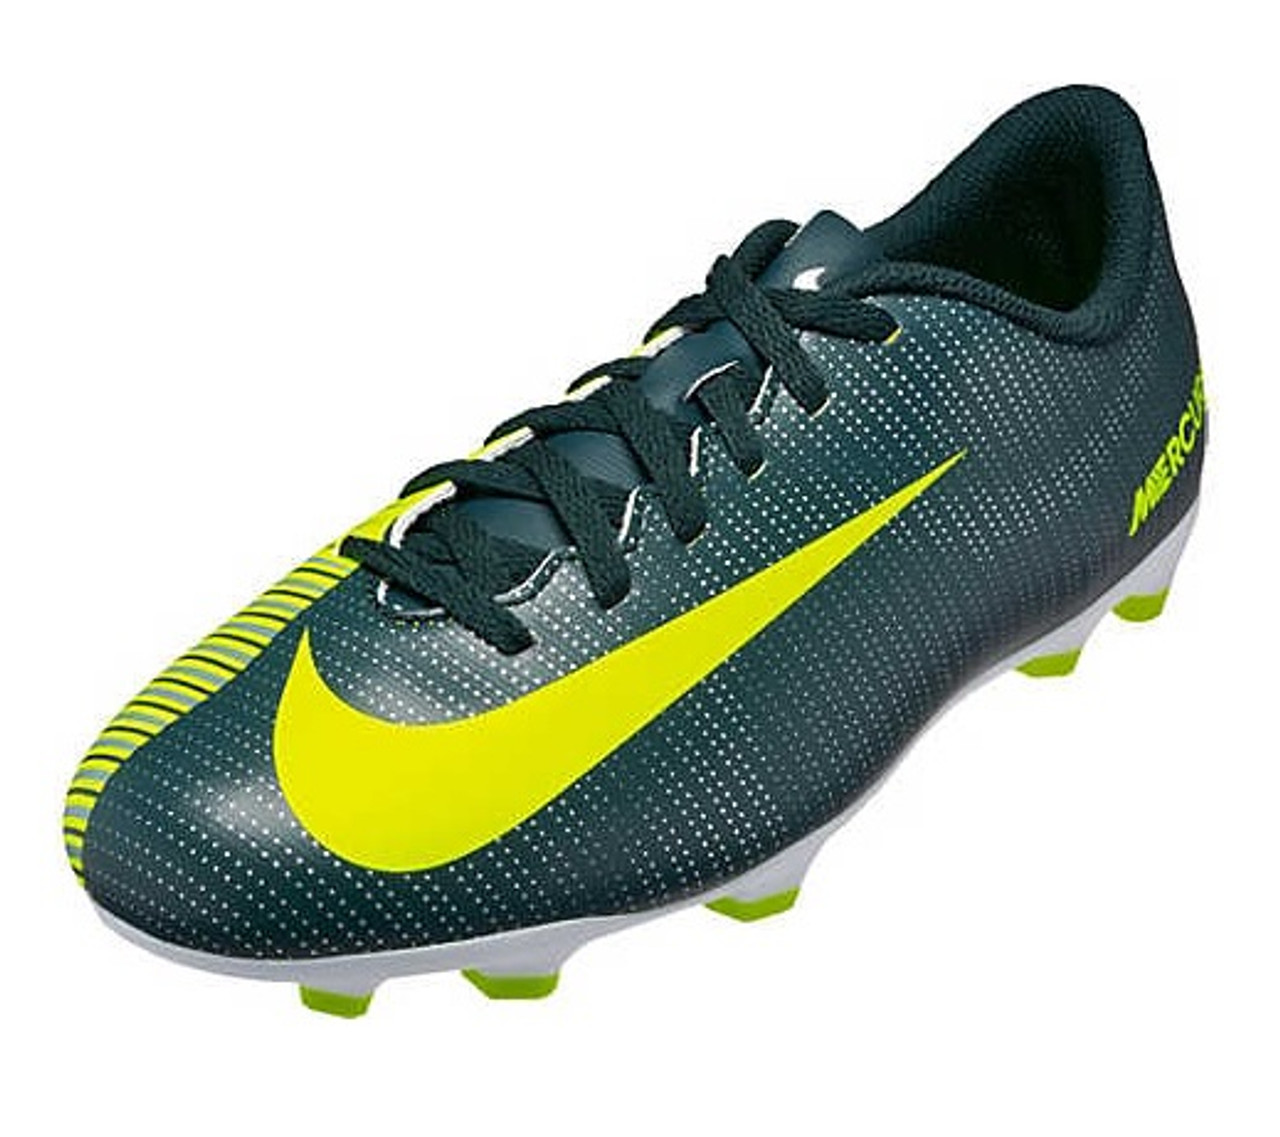 c9238be429 ... Nike Jr Mercurial Vortex III CR7 FG - Seaweed/Volt/Hasta/White SD.  size: Required